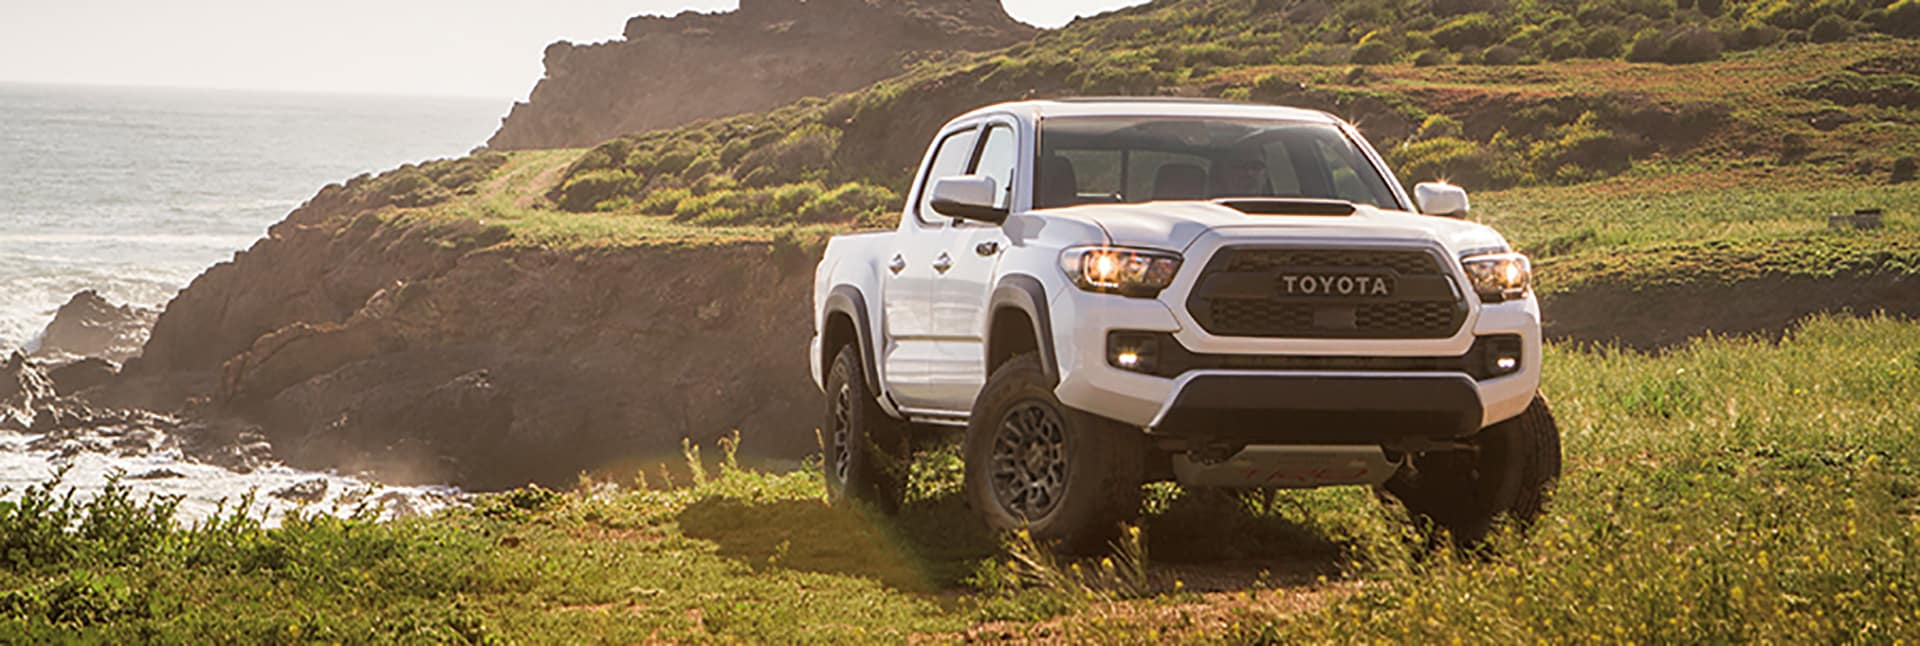 Trim Levels of the 2019 Toyota Tacoma | Lancaster Toyota